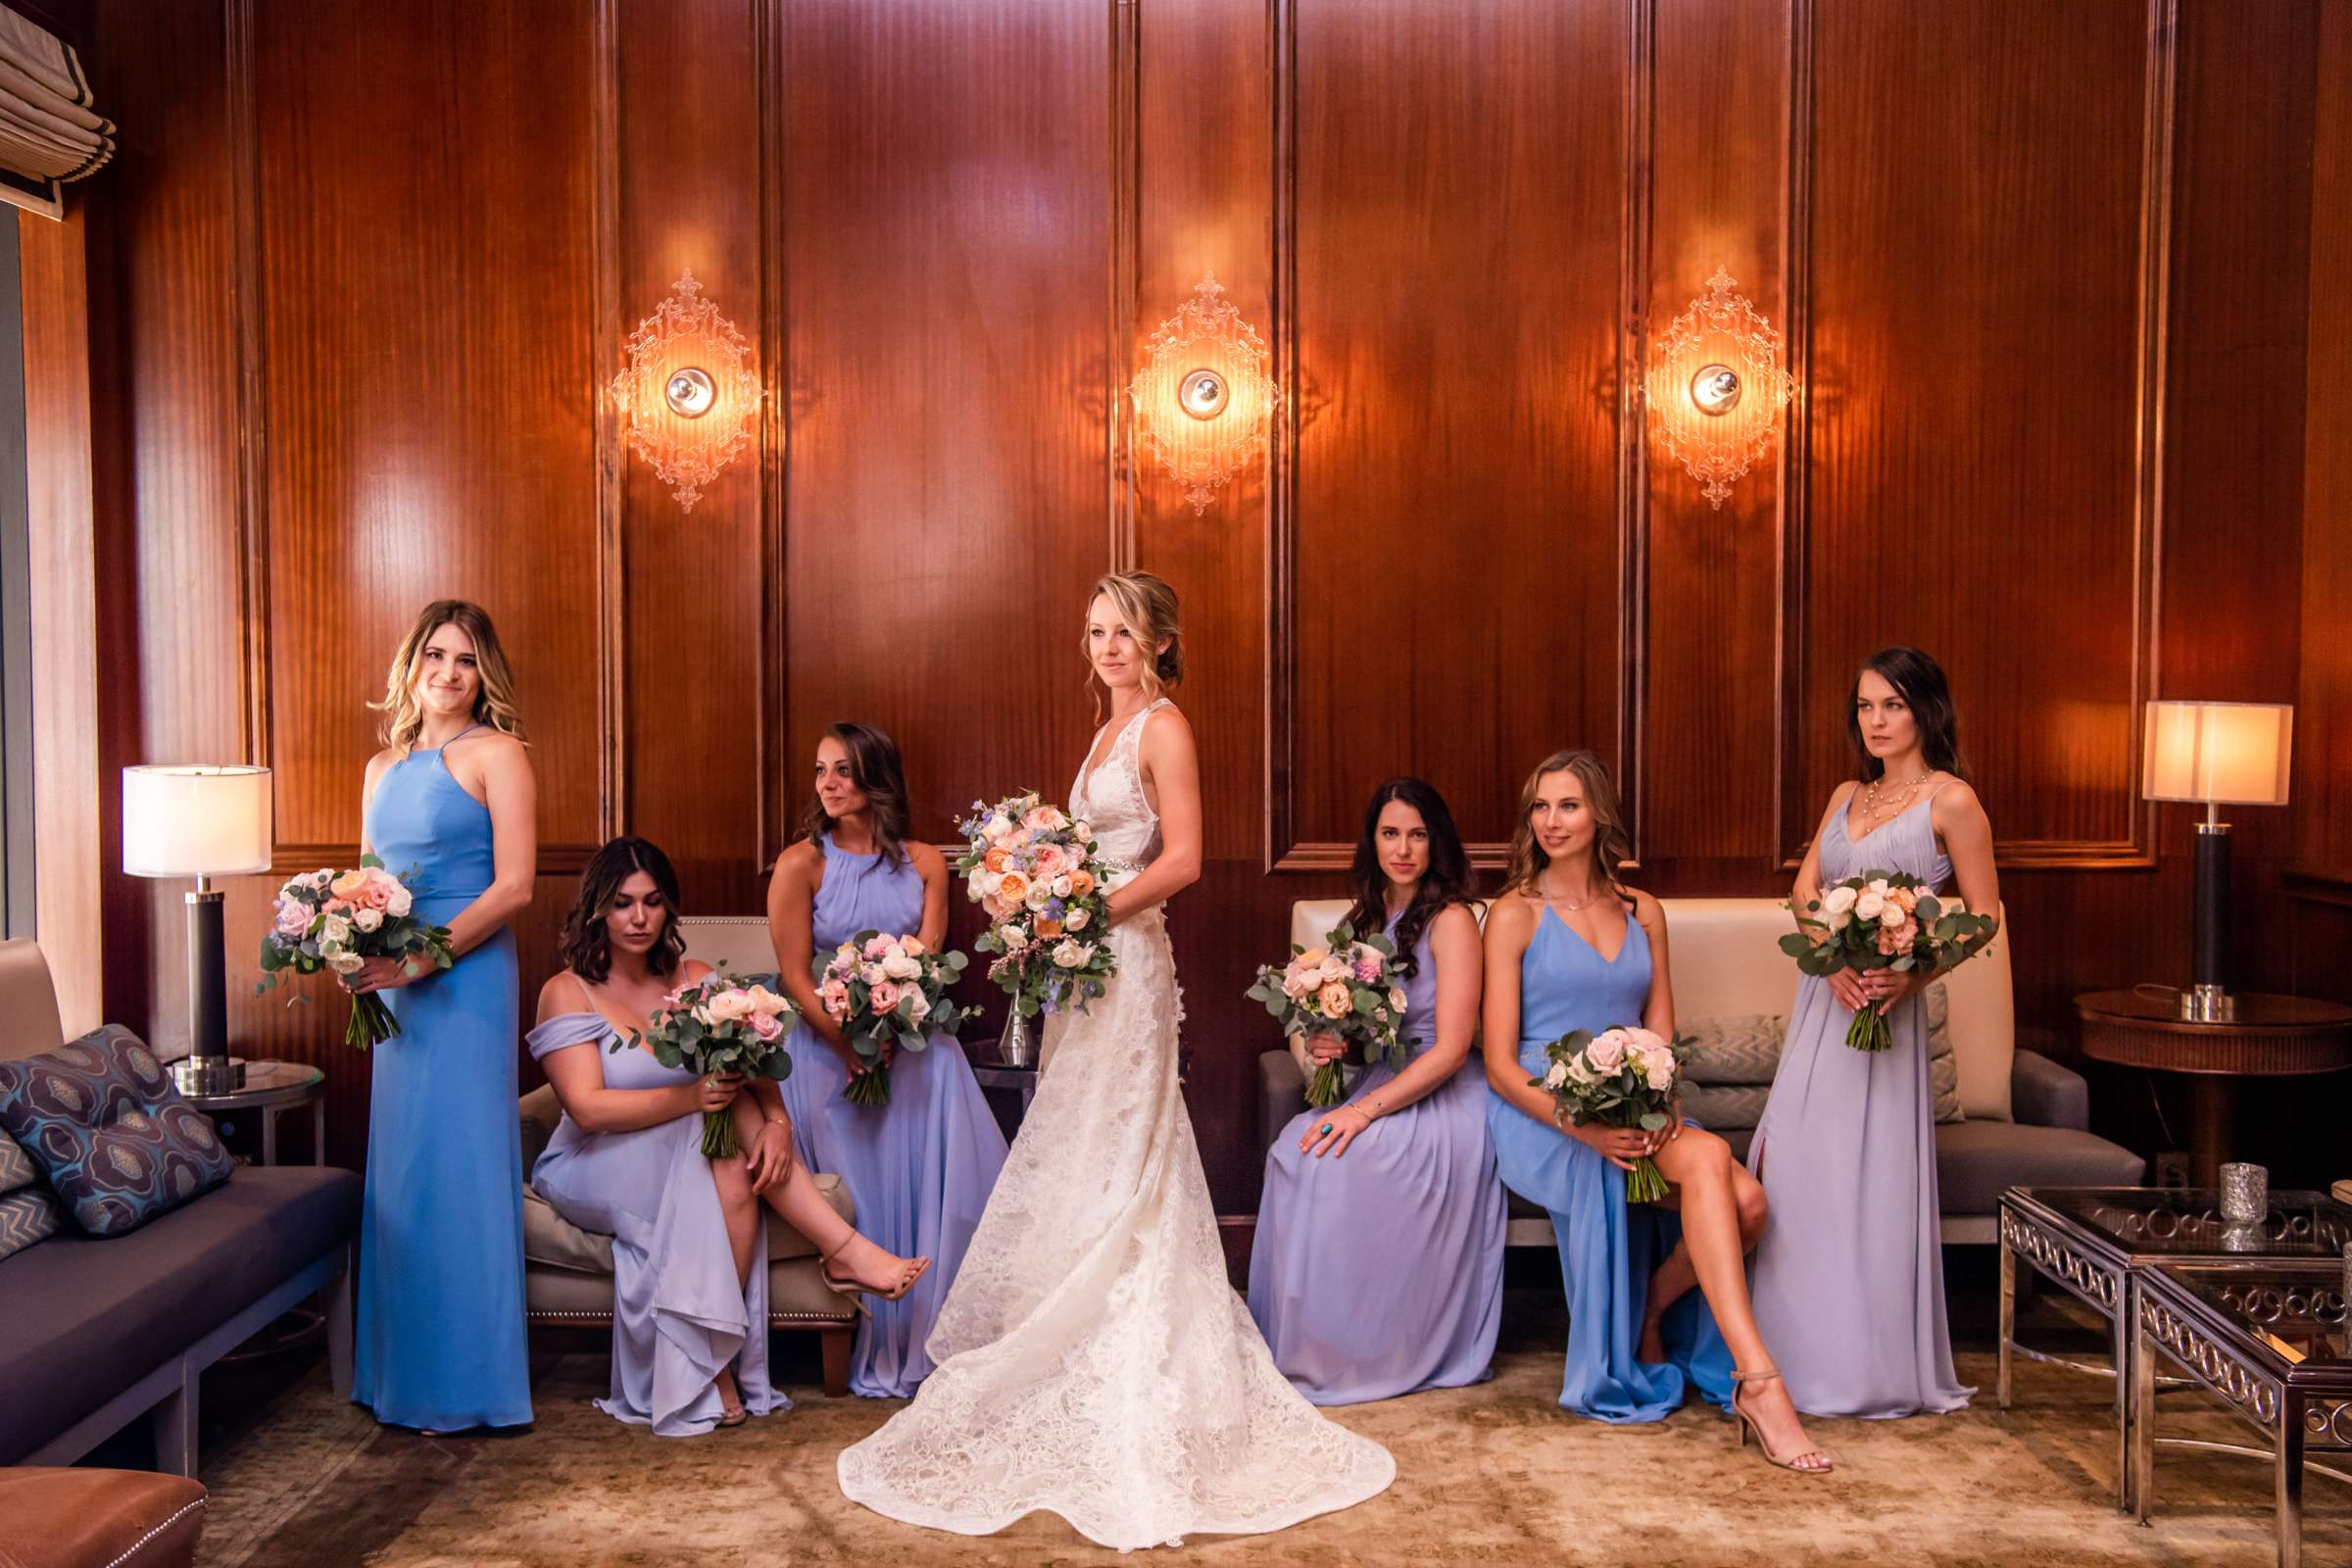 The Prado Wedding coordinated by Bliss Events, Sara and Marvin Wedding Photo #559523 by True Photography